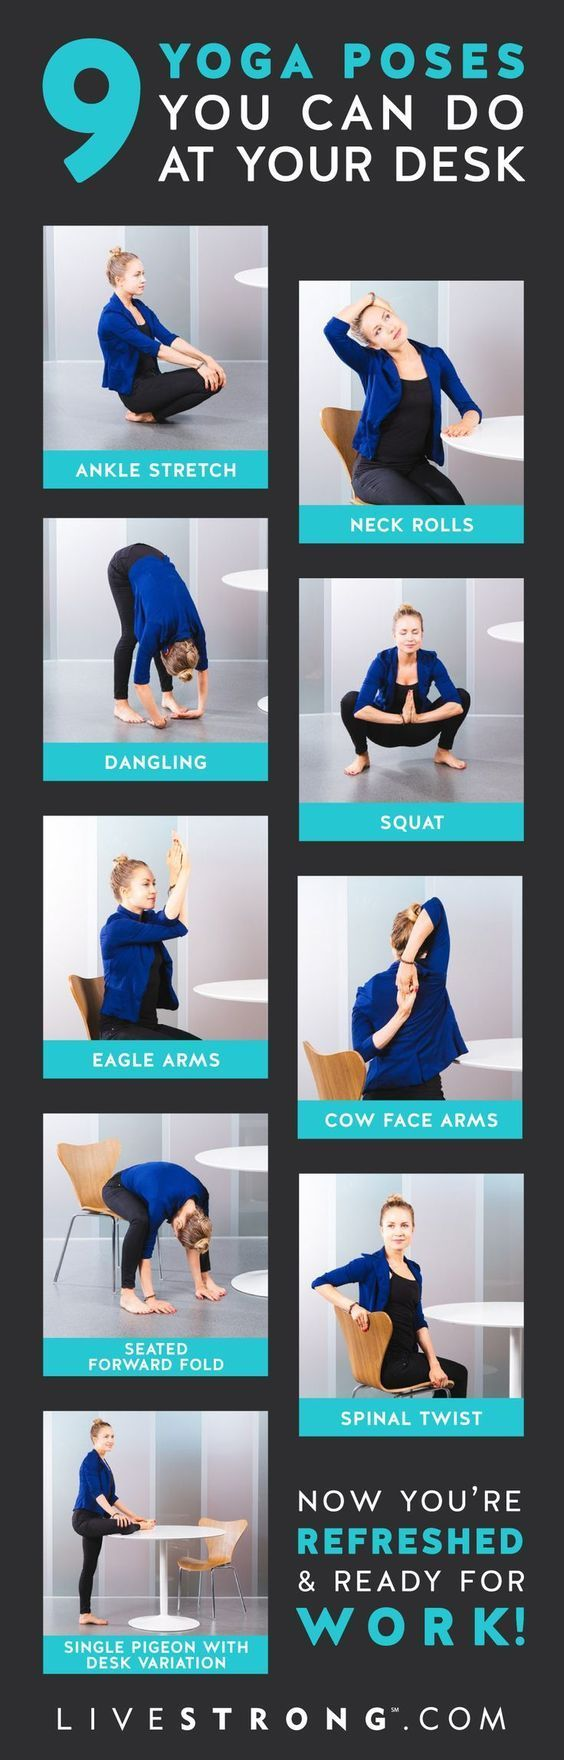 Downdog Diary Yoga Keeps You Young 9 Poses Can Do At Your Desk